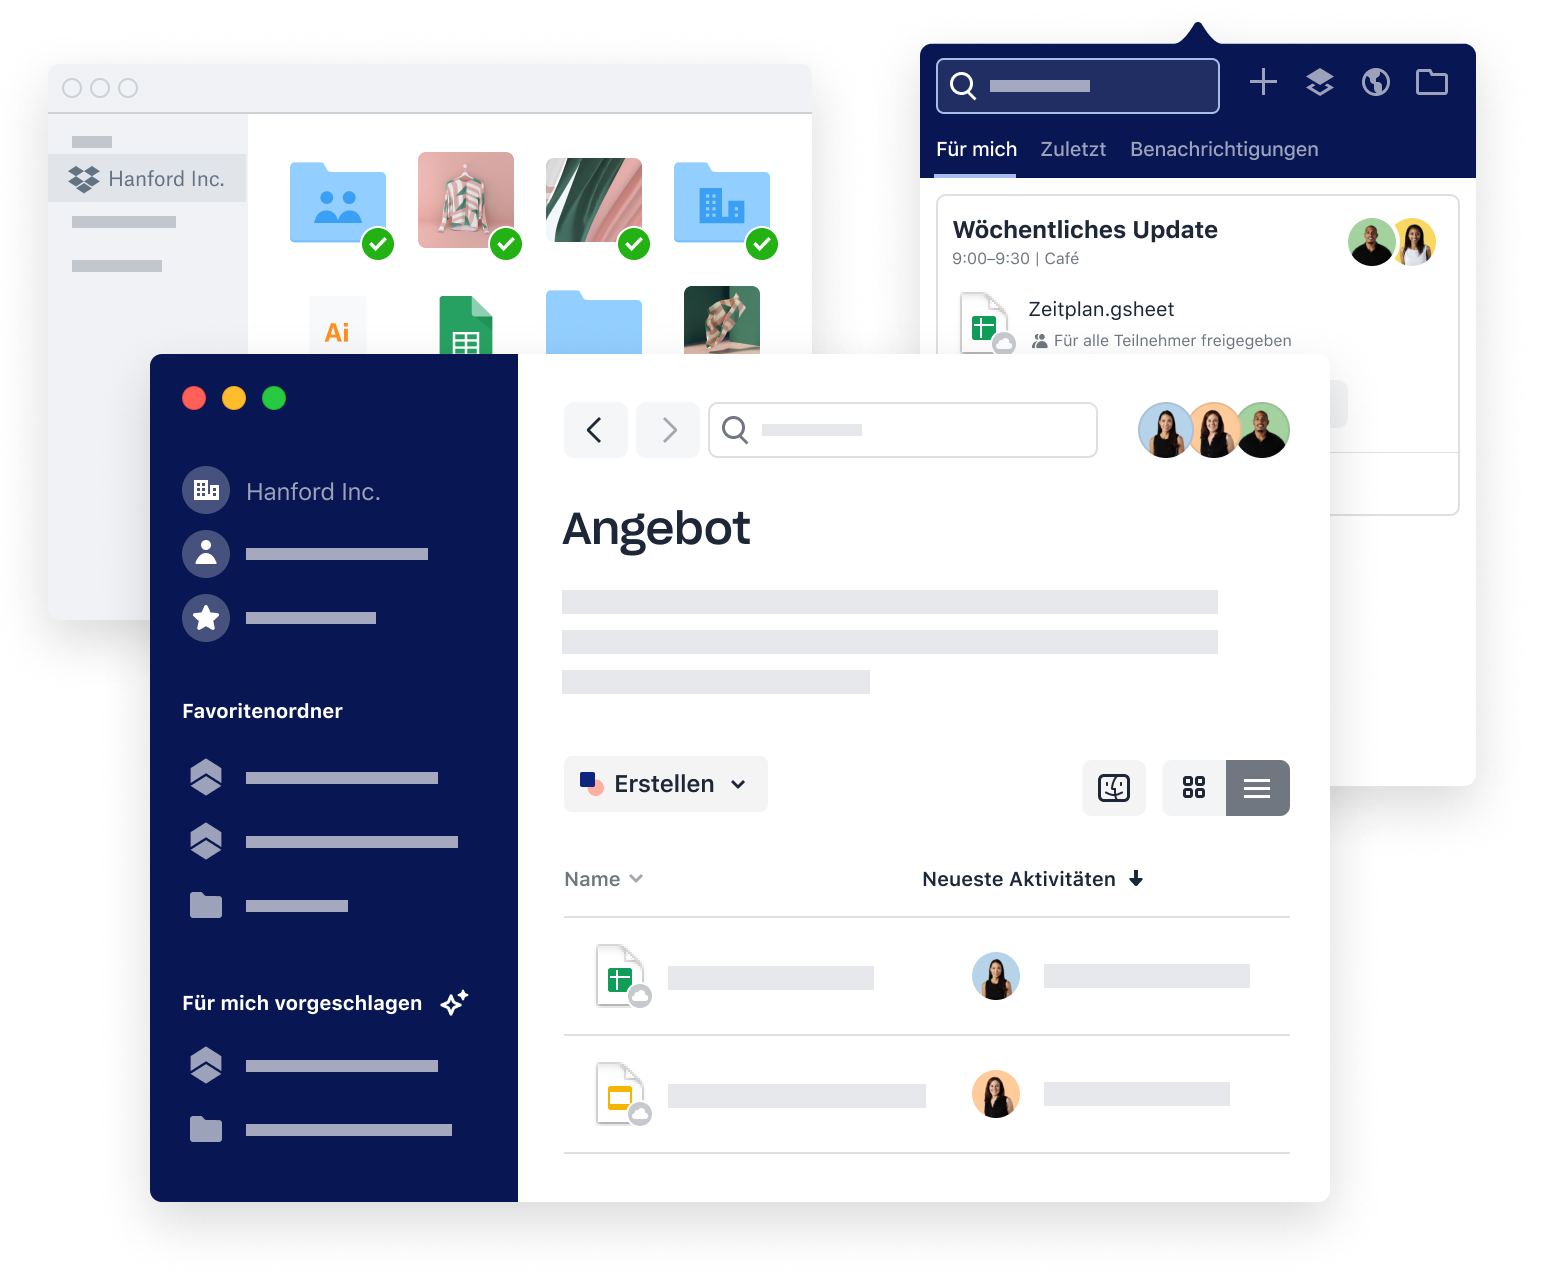 Examples of Dropbox interfaces for teamwork, including folder organization and scheduling meetings.